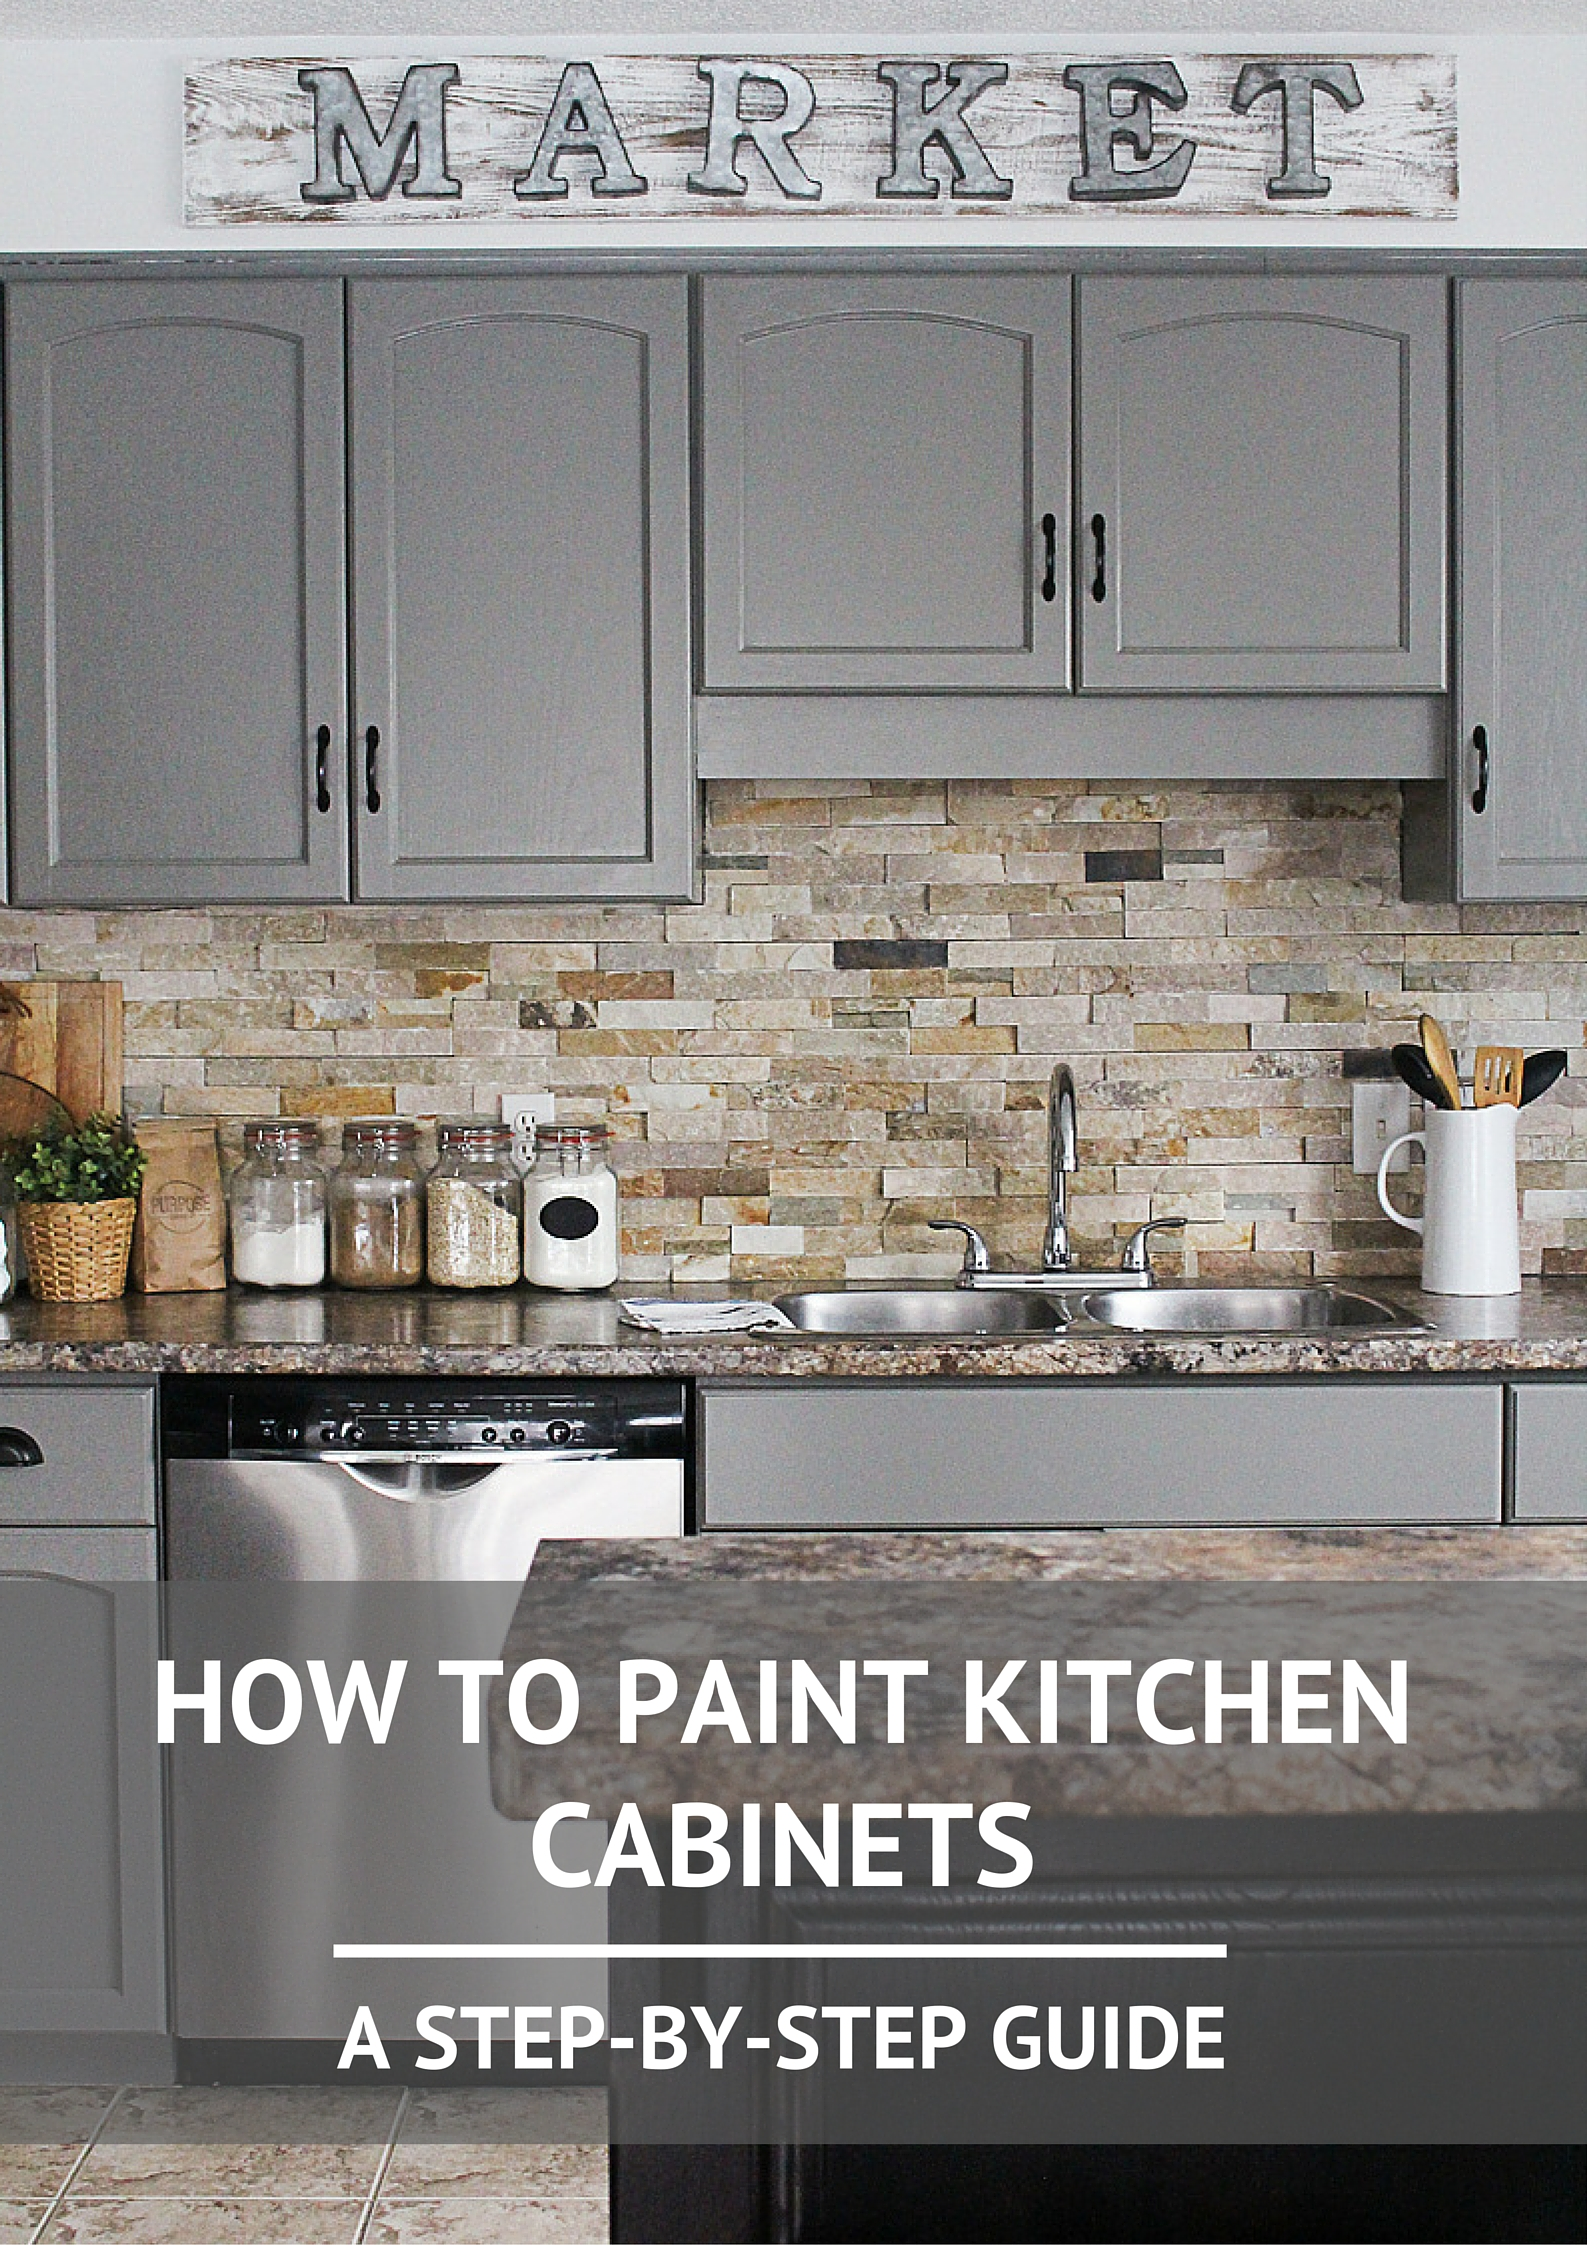 So Guys Here It Is At Last I Know Some Of You Have Been Poking Me To Share The Whole How Paint Your Kitchen Cabinets Process